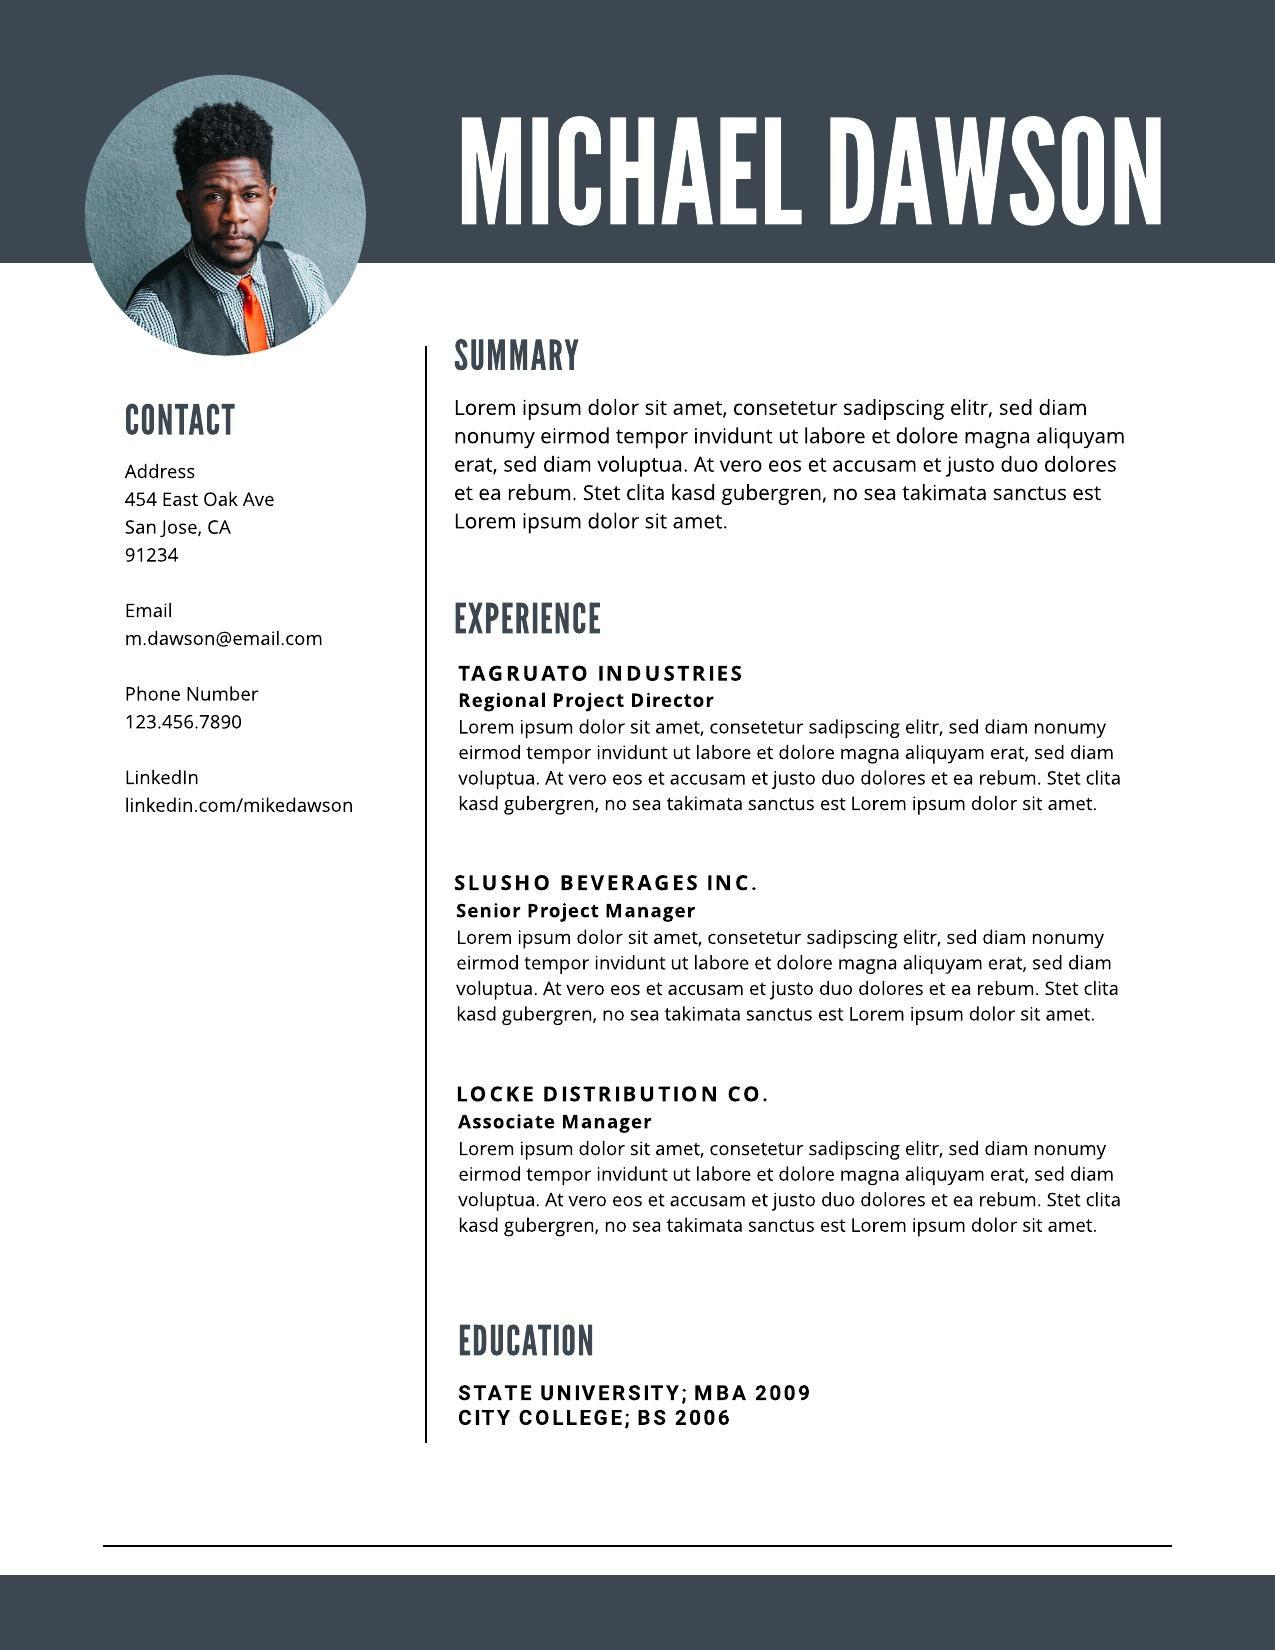 resume examples writing tips for lucidpress experience ideas image04 professional Resume Experience Ideas For Resume